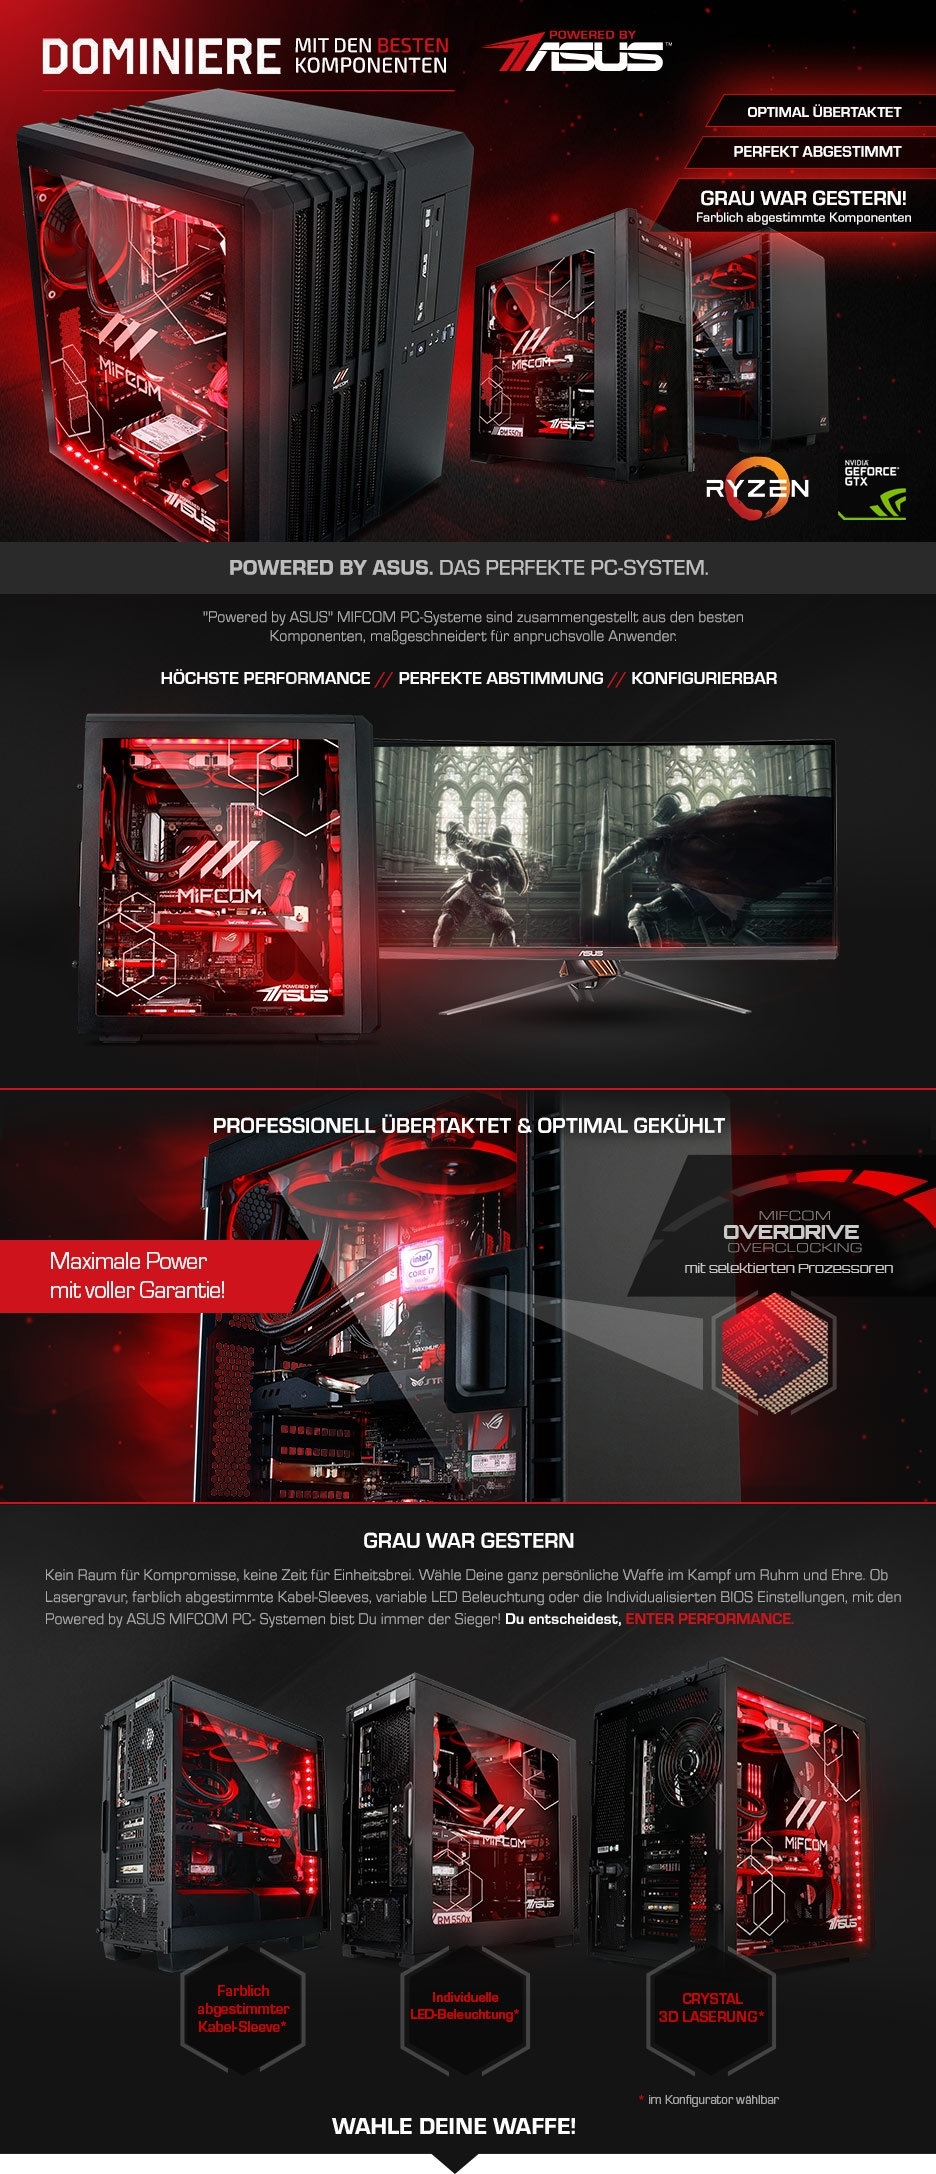 Gaming PCs Powered by ASUS